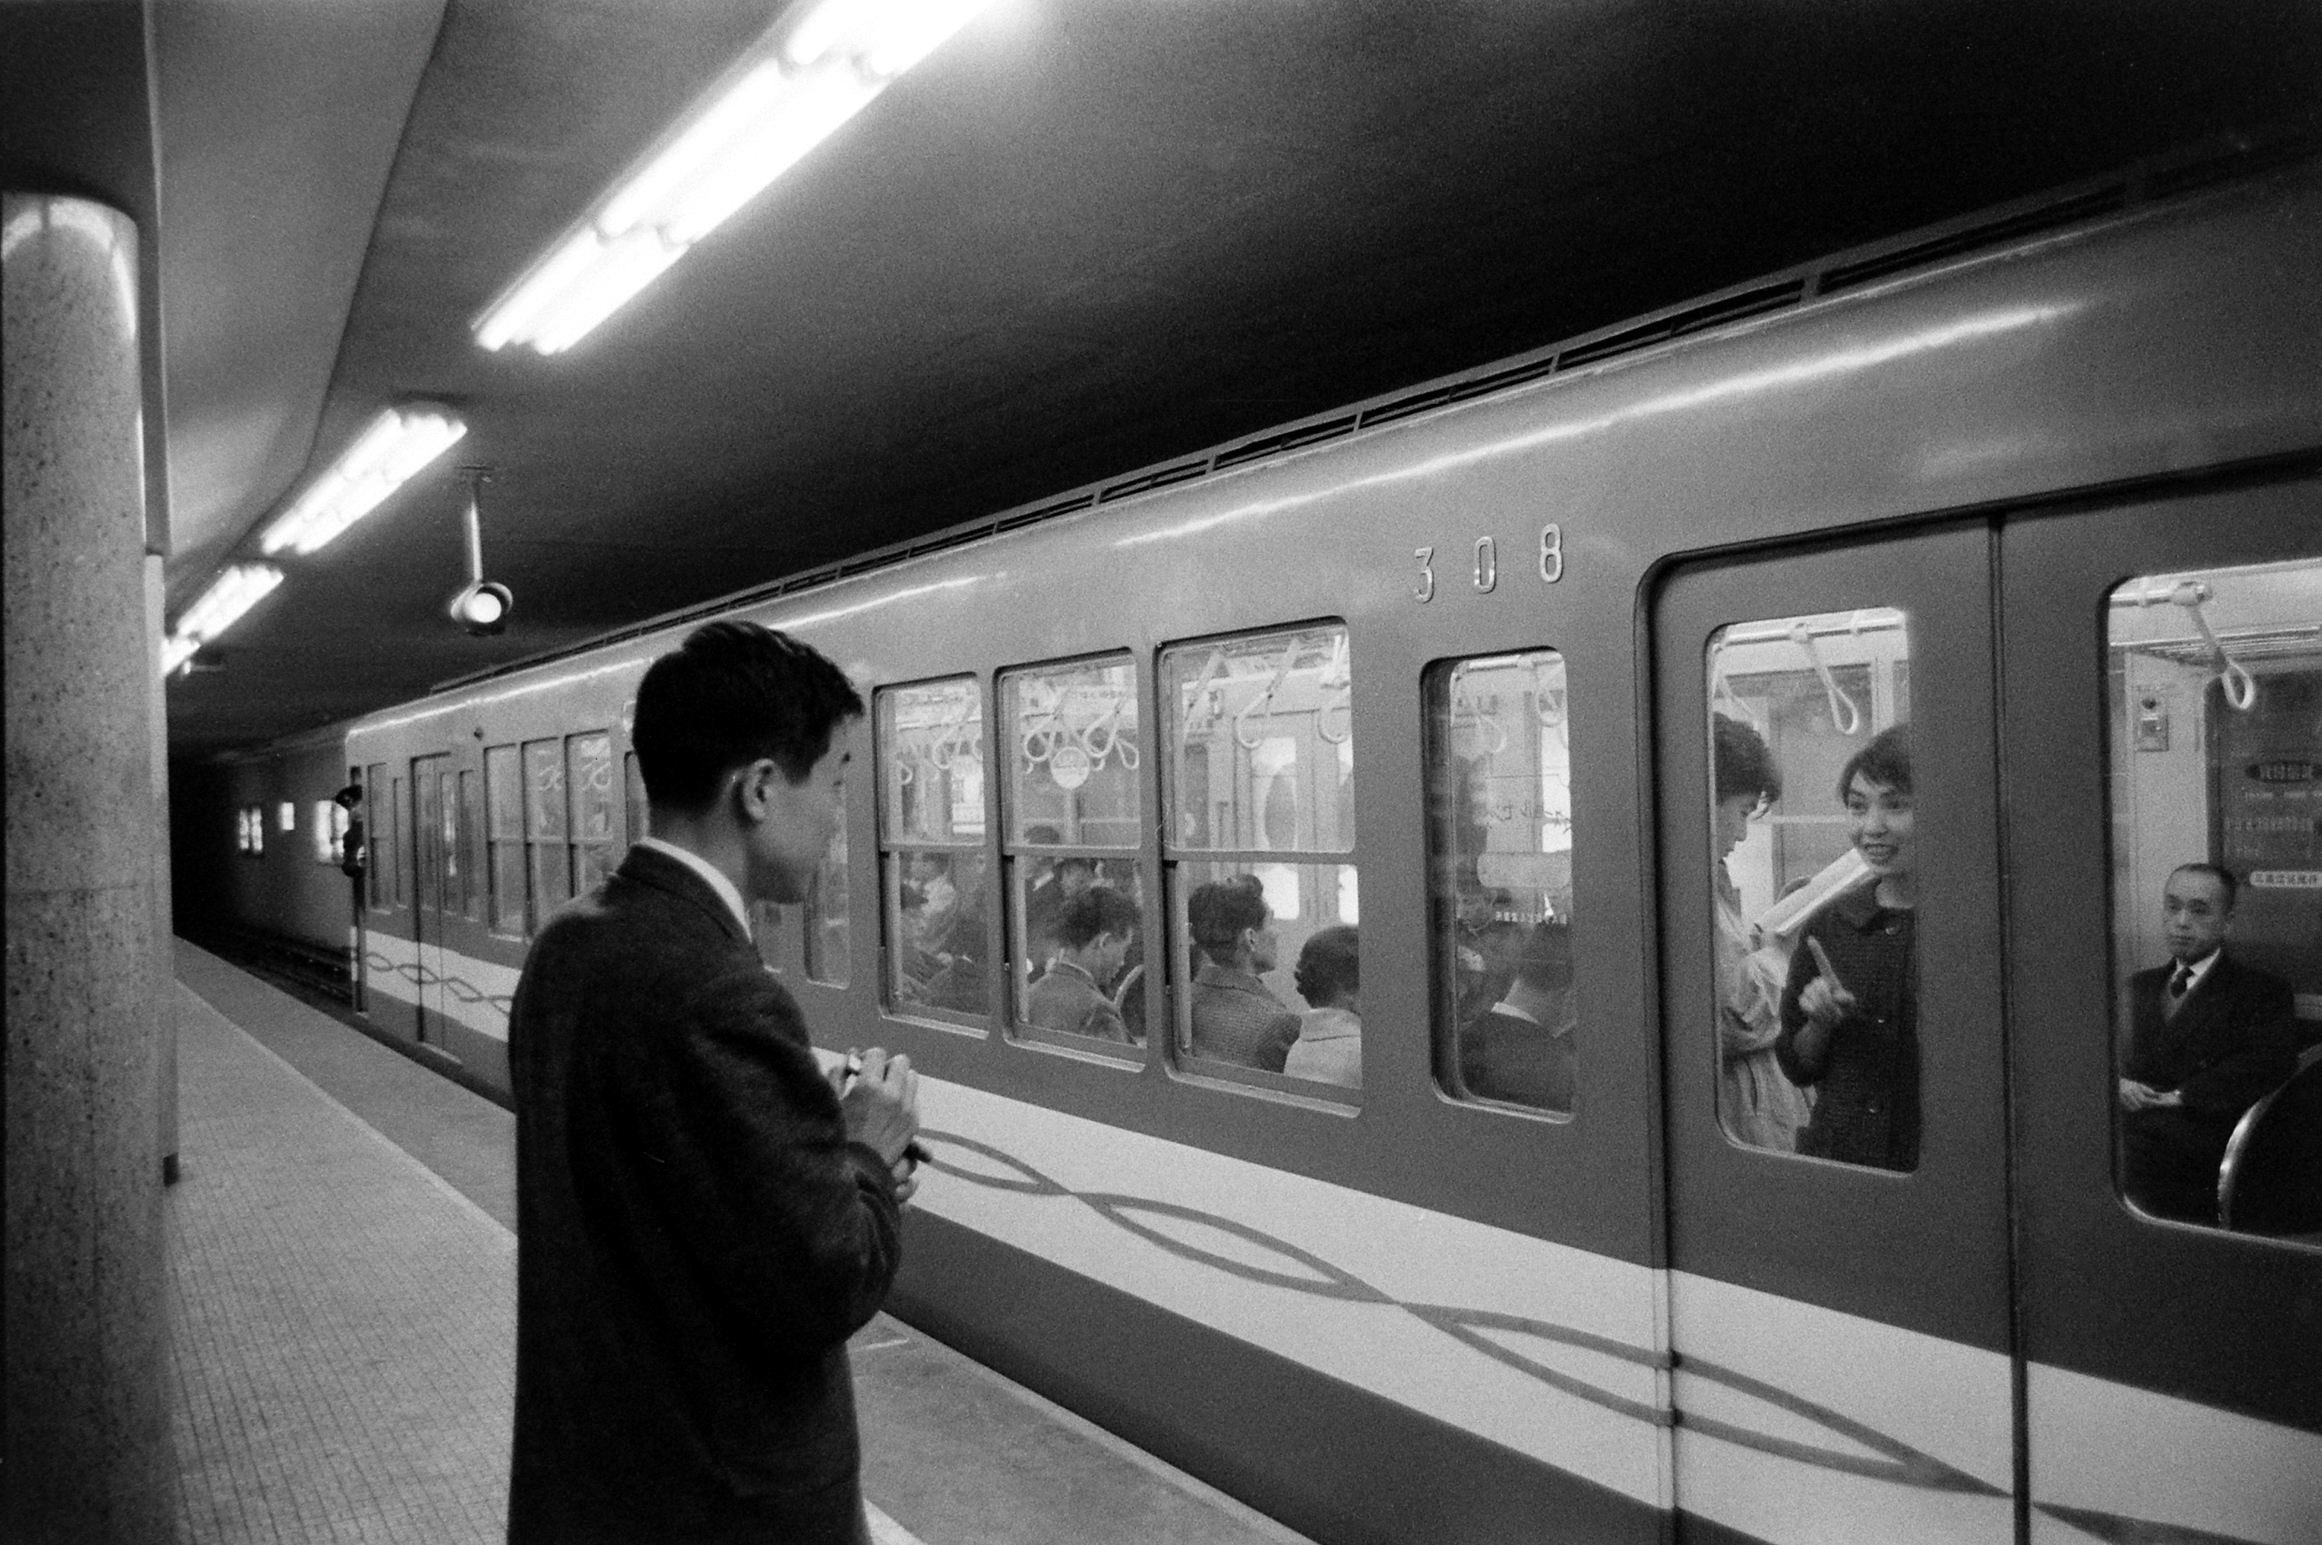 Akiksuke Tsutsui, left, bids his girlfriend, Chiyoko Inami, farewell as her train departs.  March 1959.